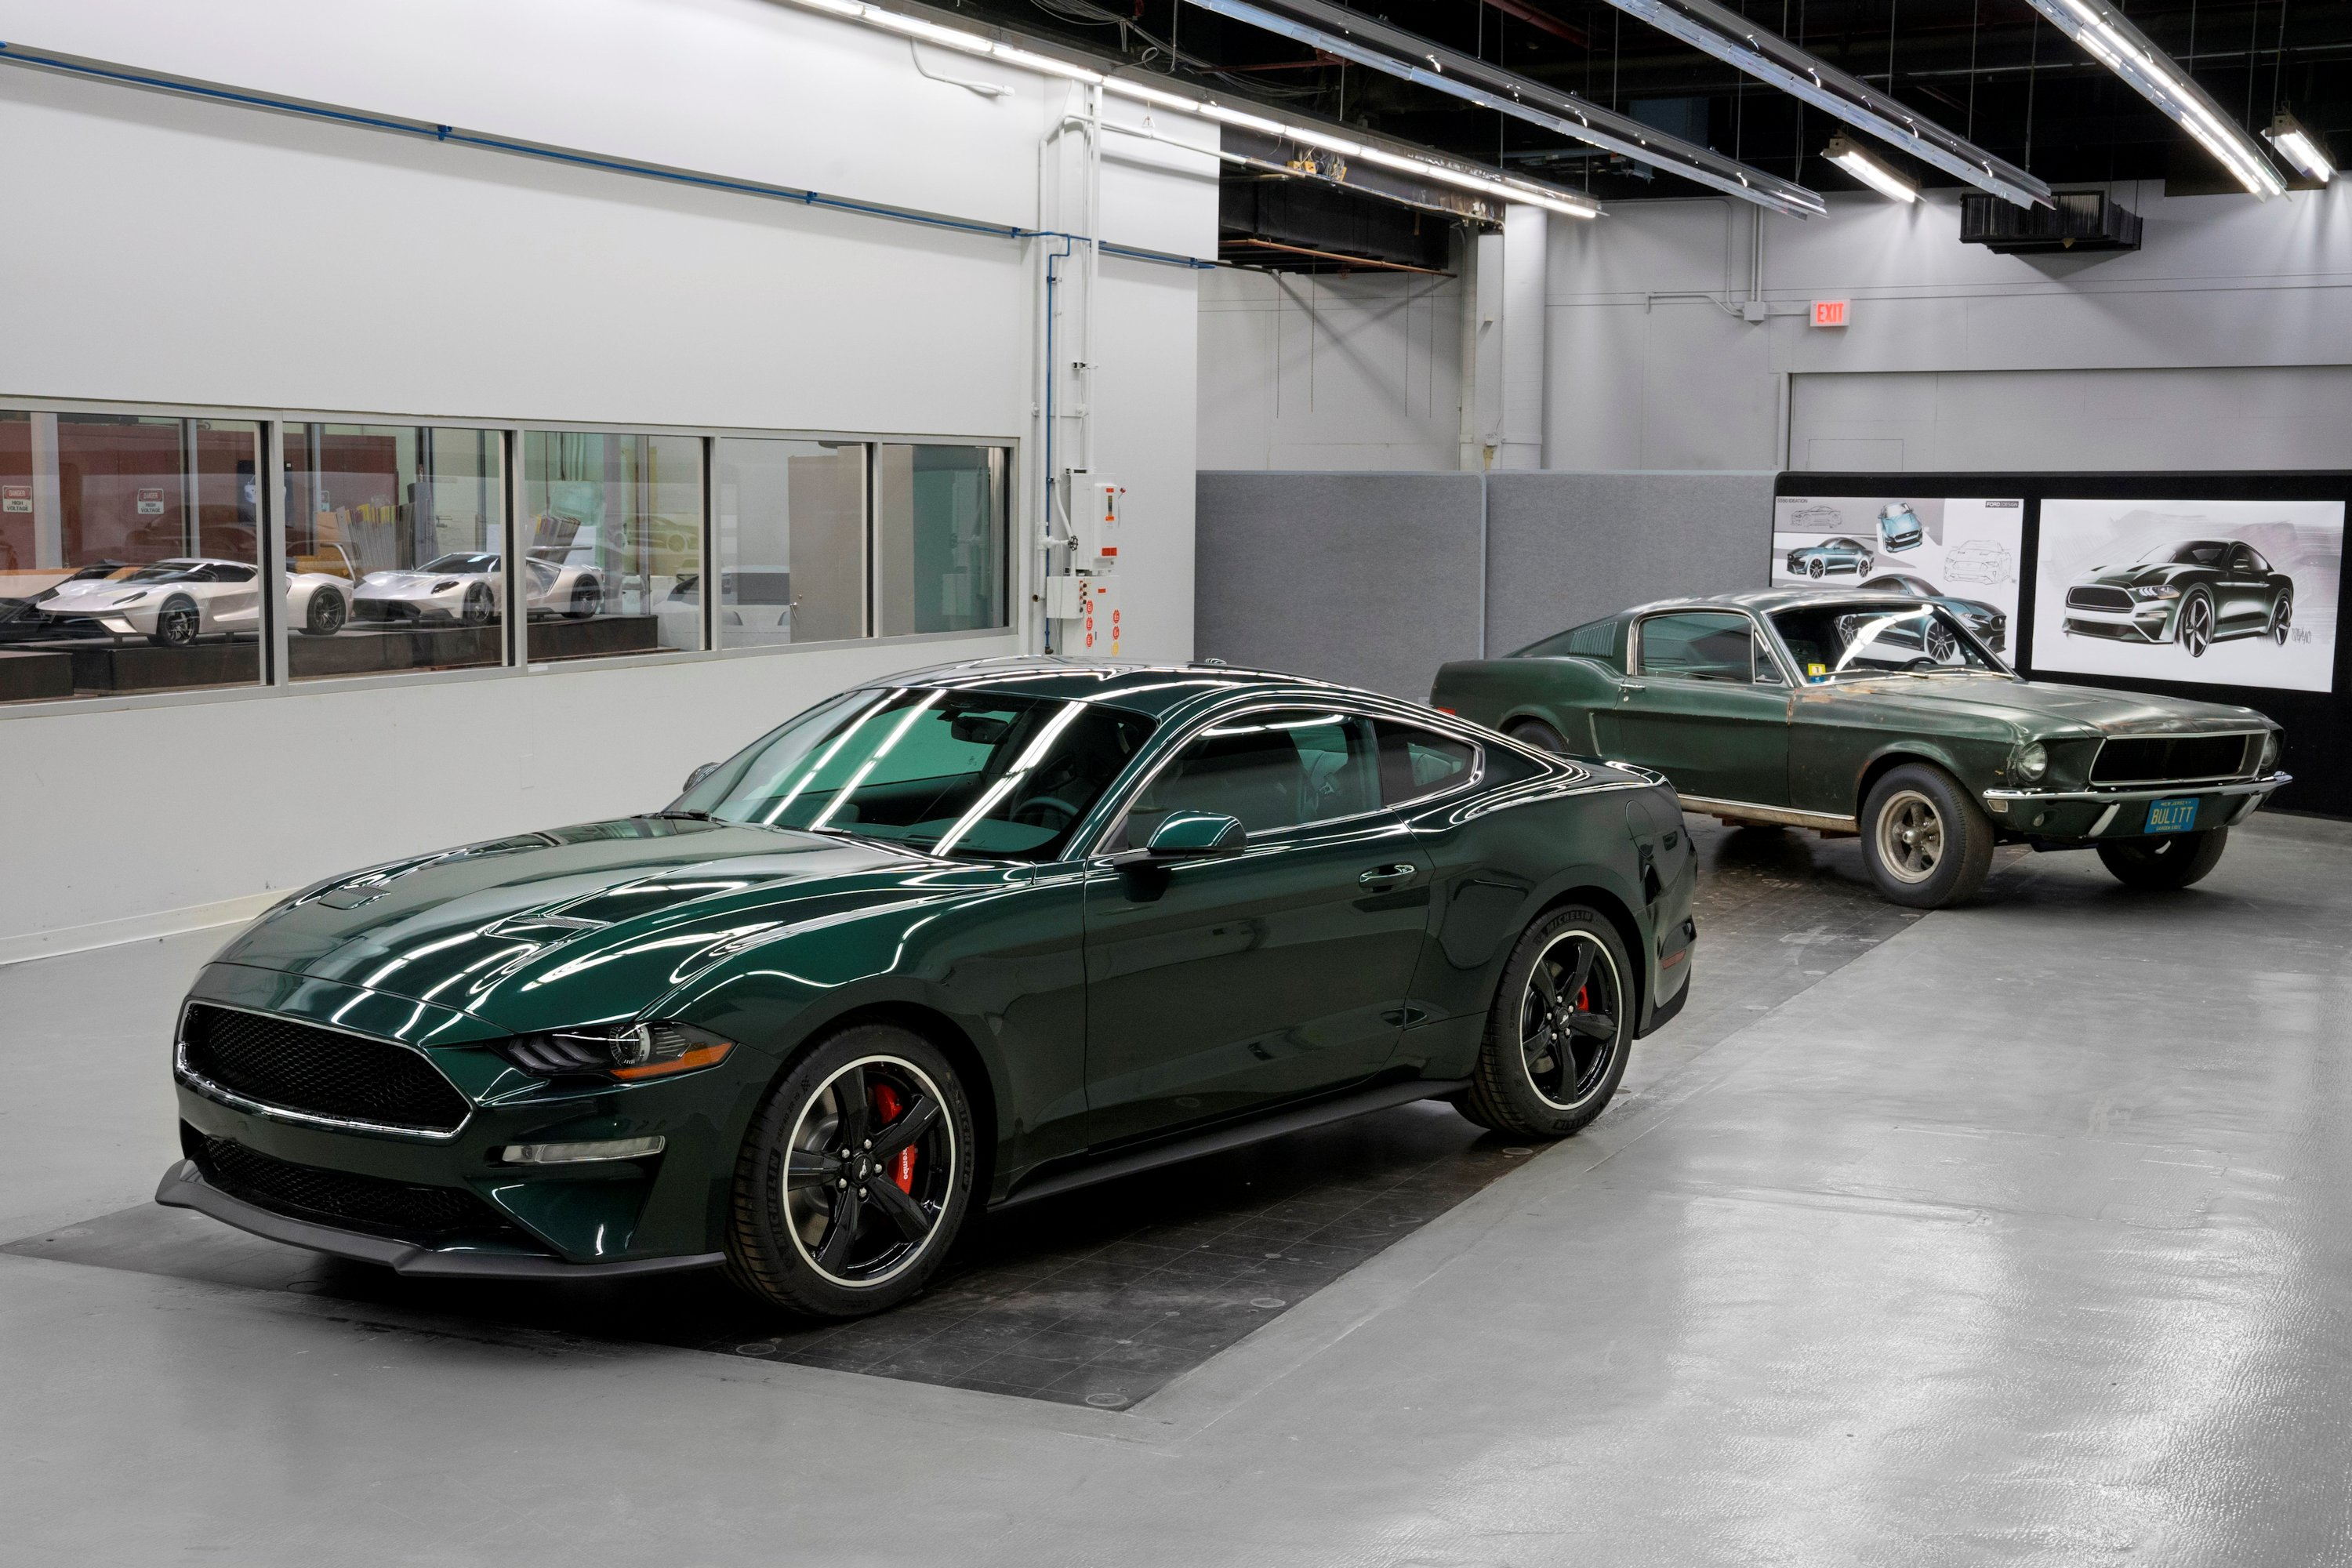 New 2019 Mustang Bullitt With Original